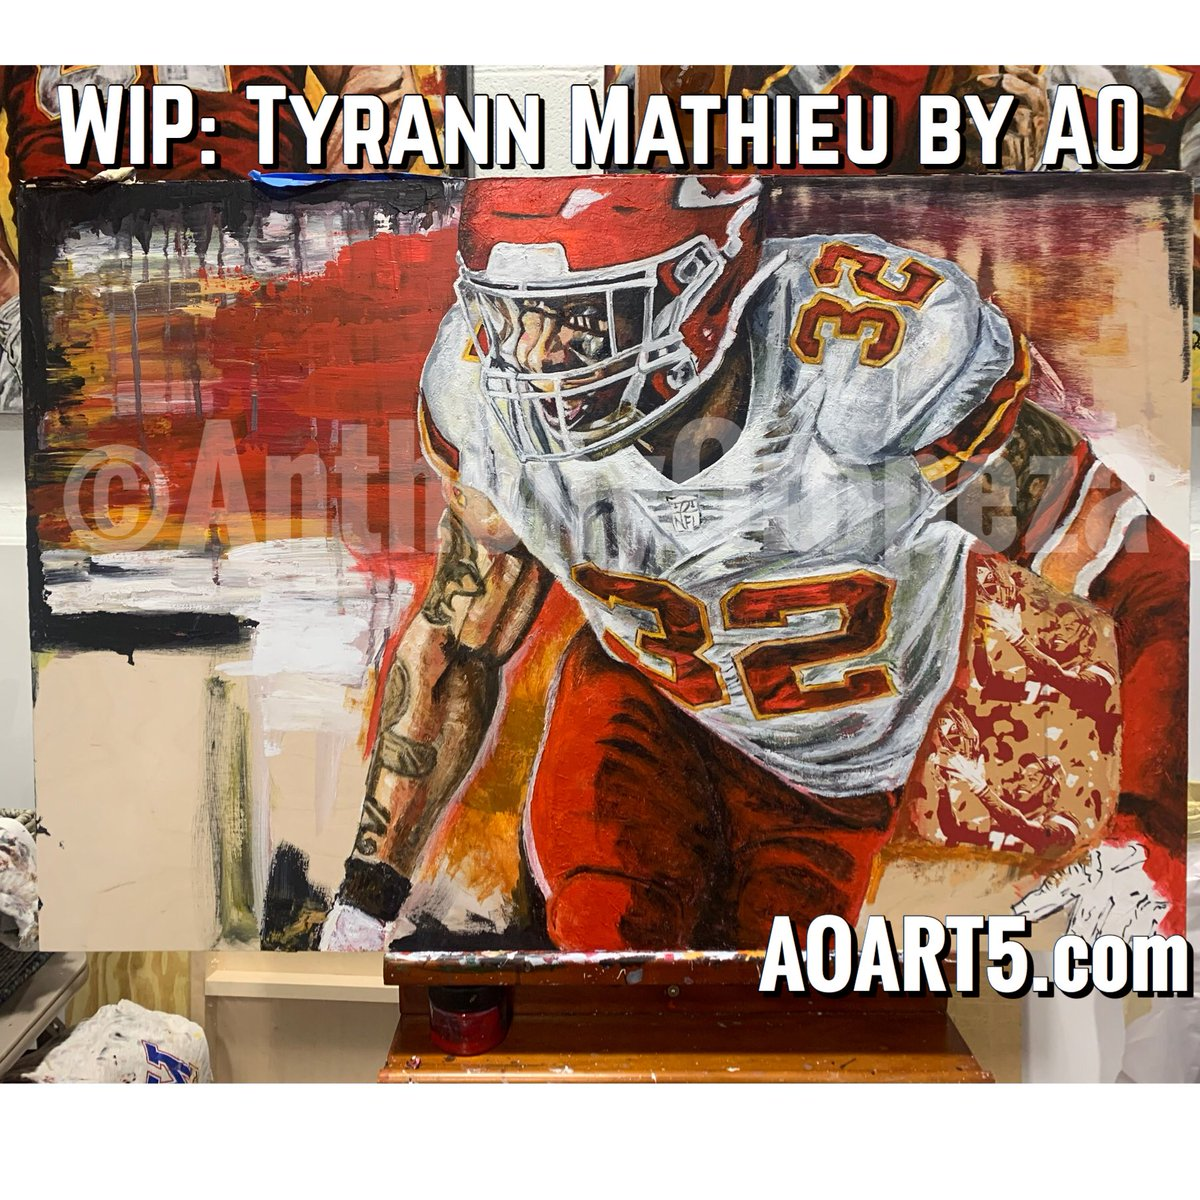 Don't be mad #chiefskingdom , I had a visitor in the AOART5 Studio this weekend from the Tampa Bay Org. and they were eyeballing my Tyrann Mathieu piece.  Then they also wanted to discuss a commission.  Mixed emotions, but business is business.  #ChiefsForever #ChiefsKingdom